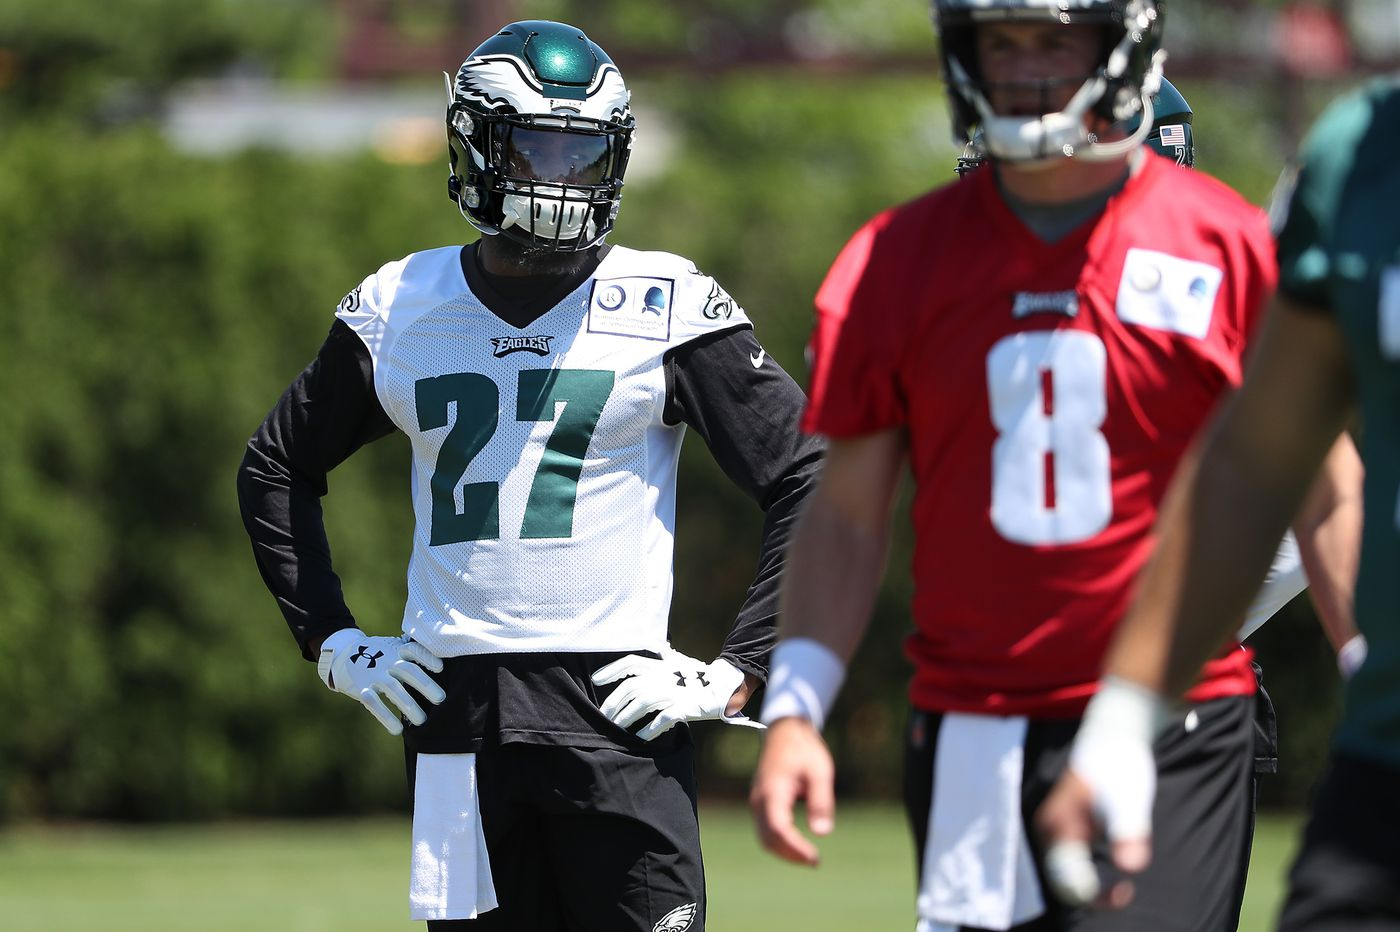 Malcolm Jenkins attends Eagles' mandatory minicamp, but believes he's 'outplayed' his contract